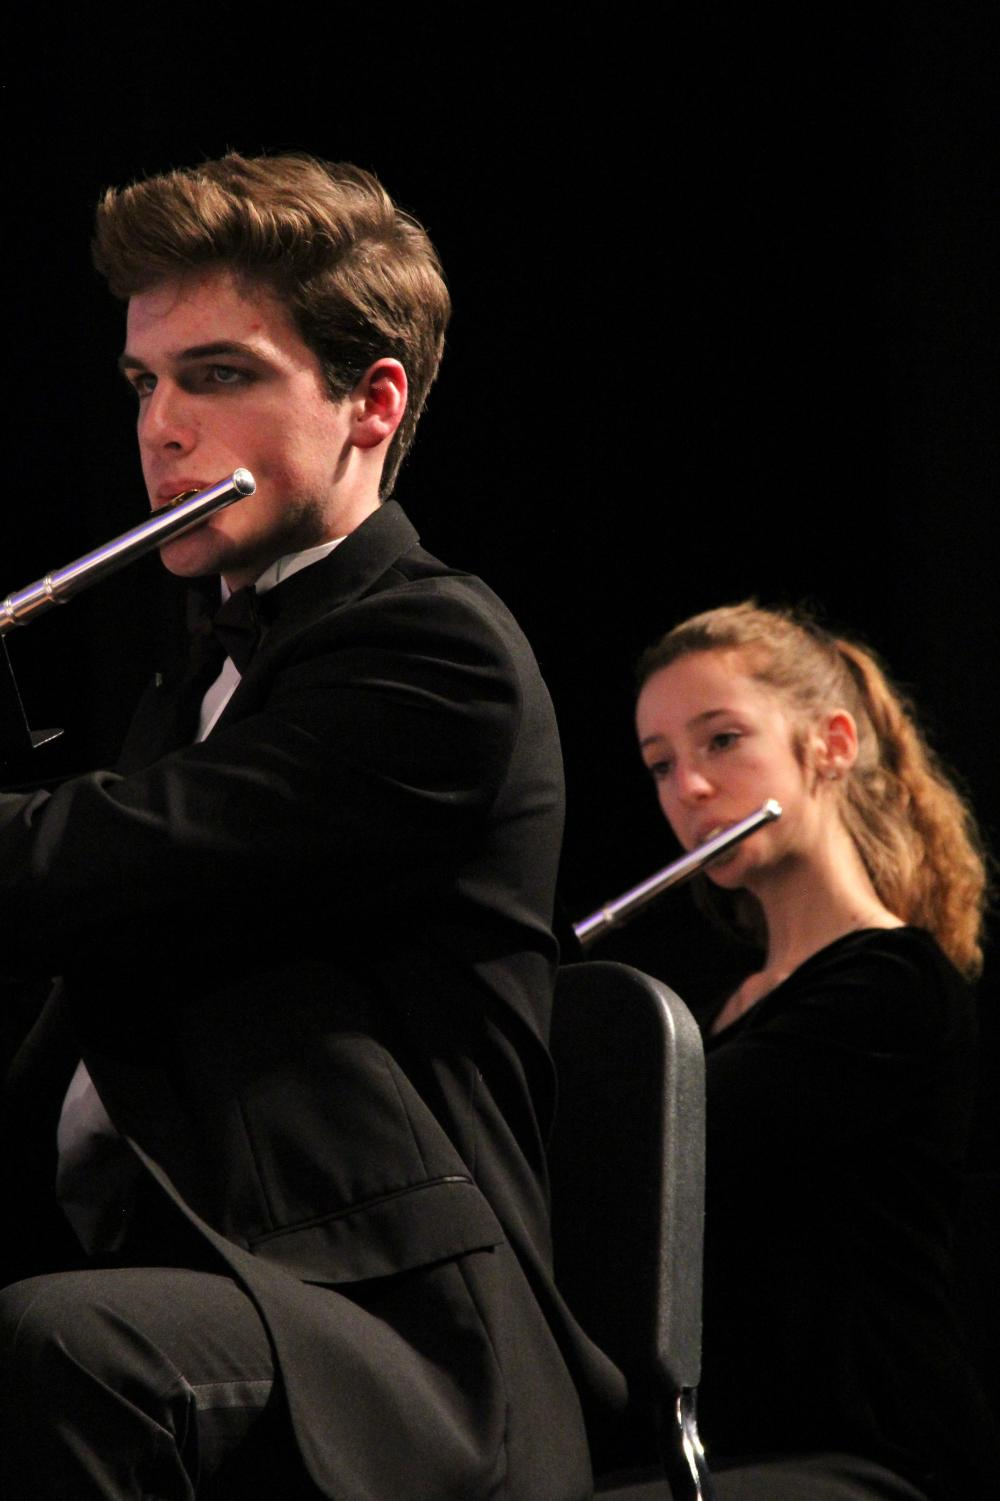 Will+Blackmore+and+Devin+Morgan%2C+sophomores%2C+play+their+flutes+during+a+woodwind+performance.+